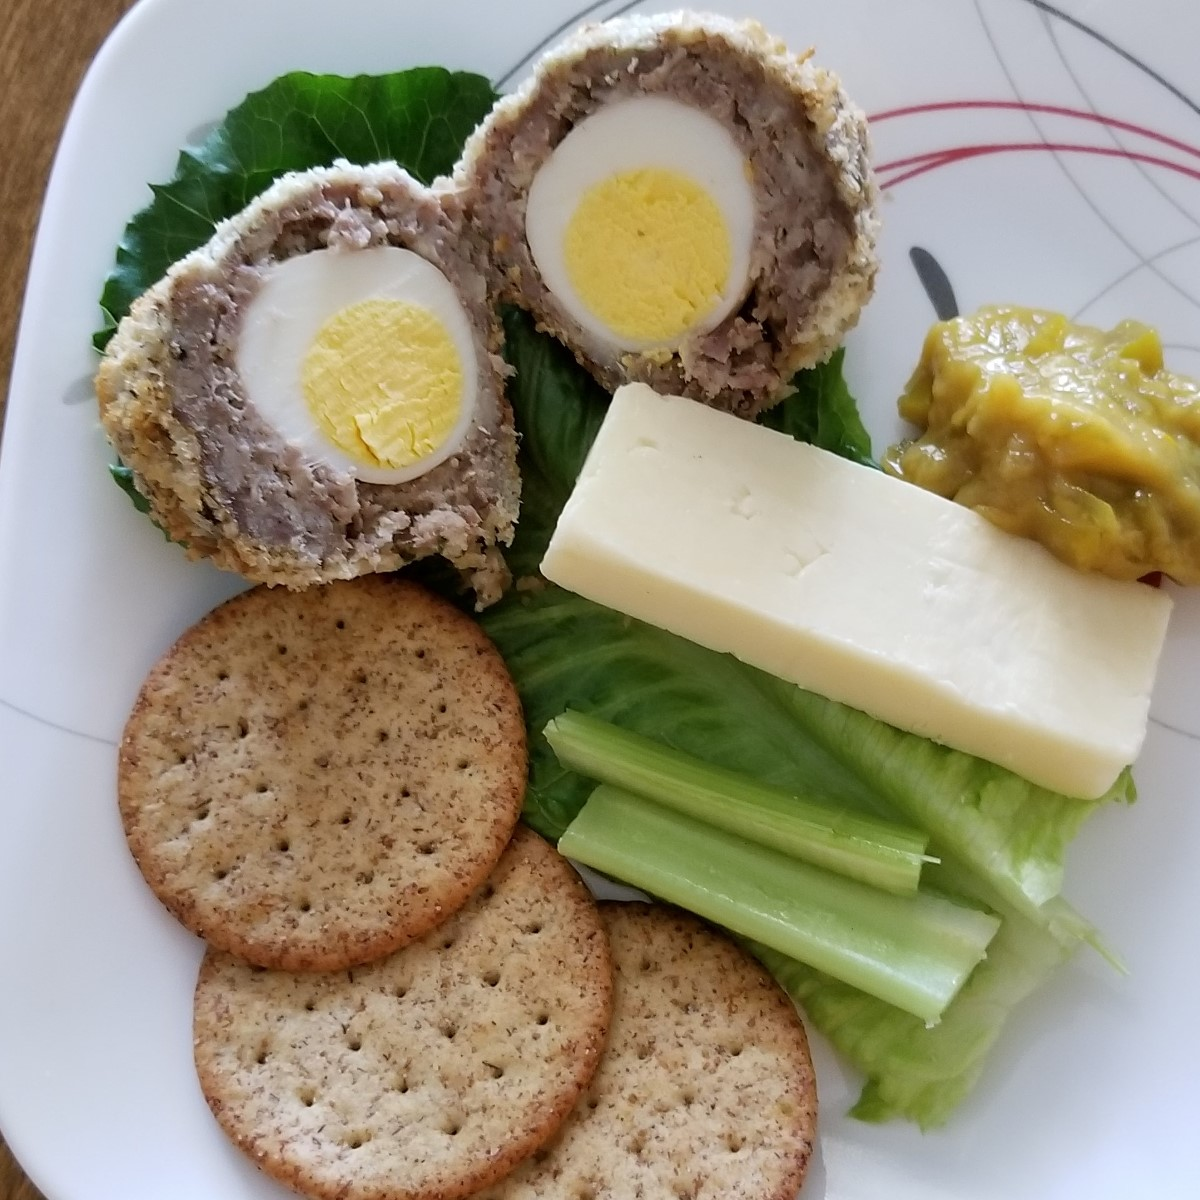 SCOTCH EGG – OVEN BAKED